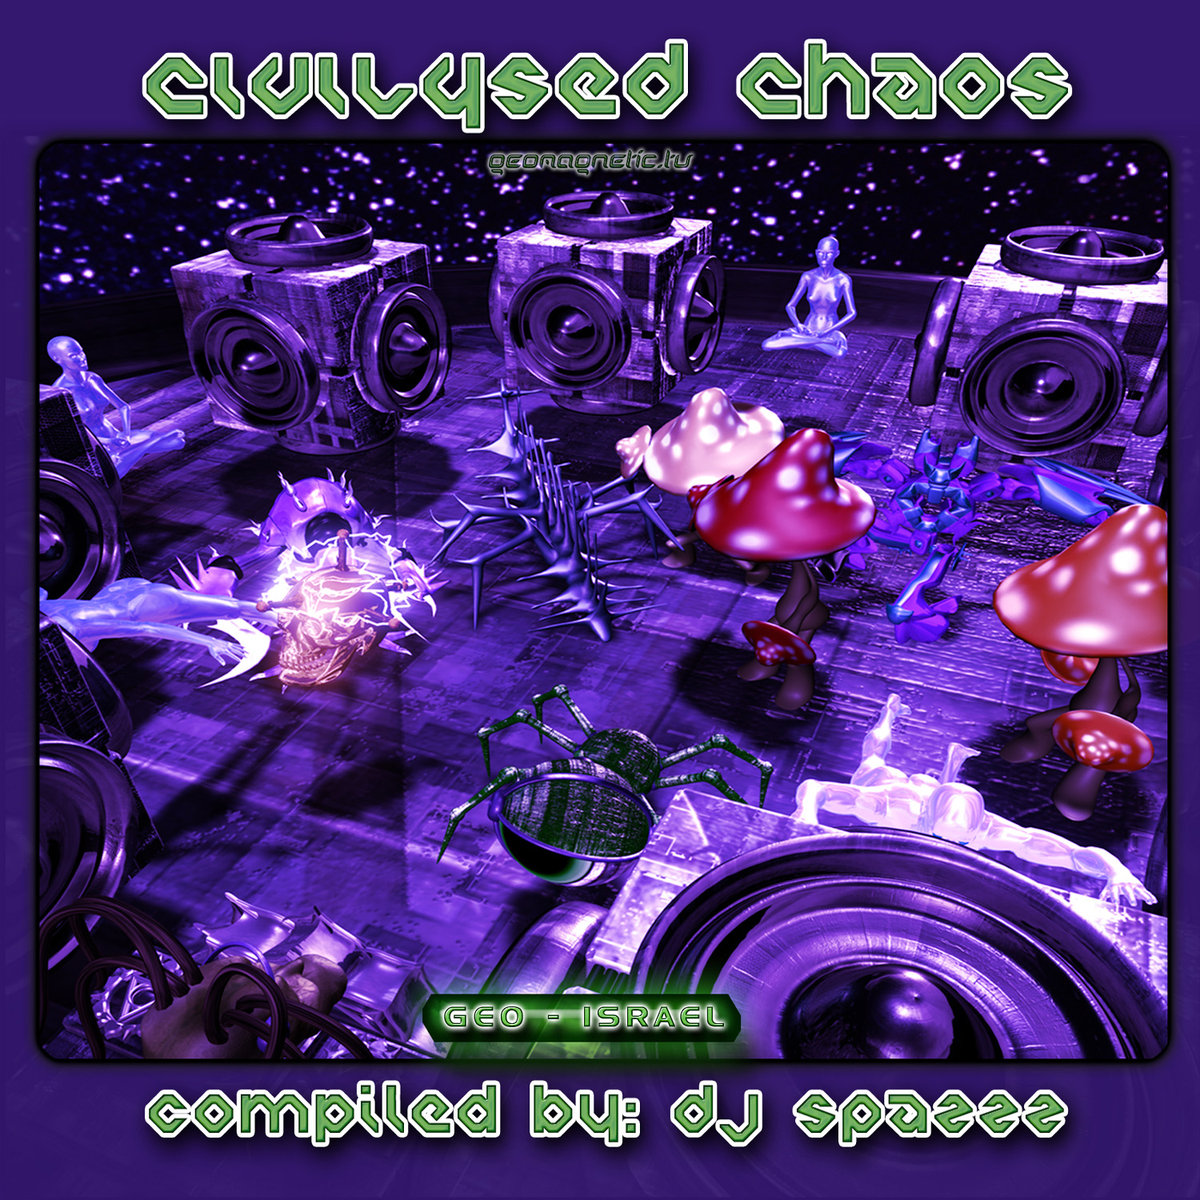 Audiopathik - Room Function @ 'Various Artists - Civilysed Chaos (Compiled by DJ Spazzz)' album (electronic, goa)